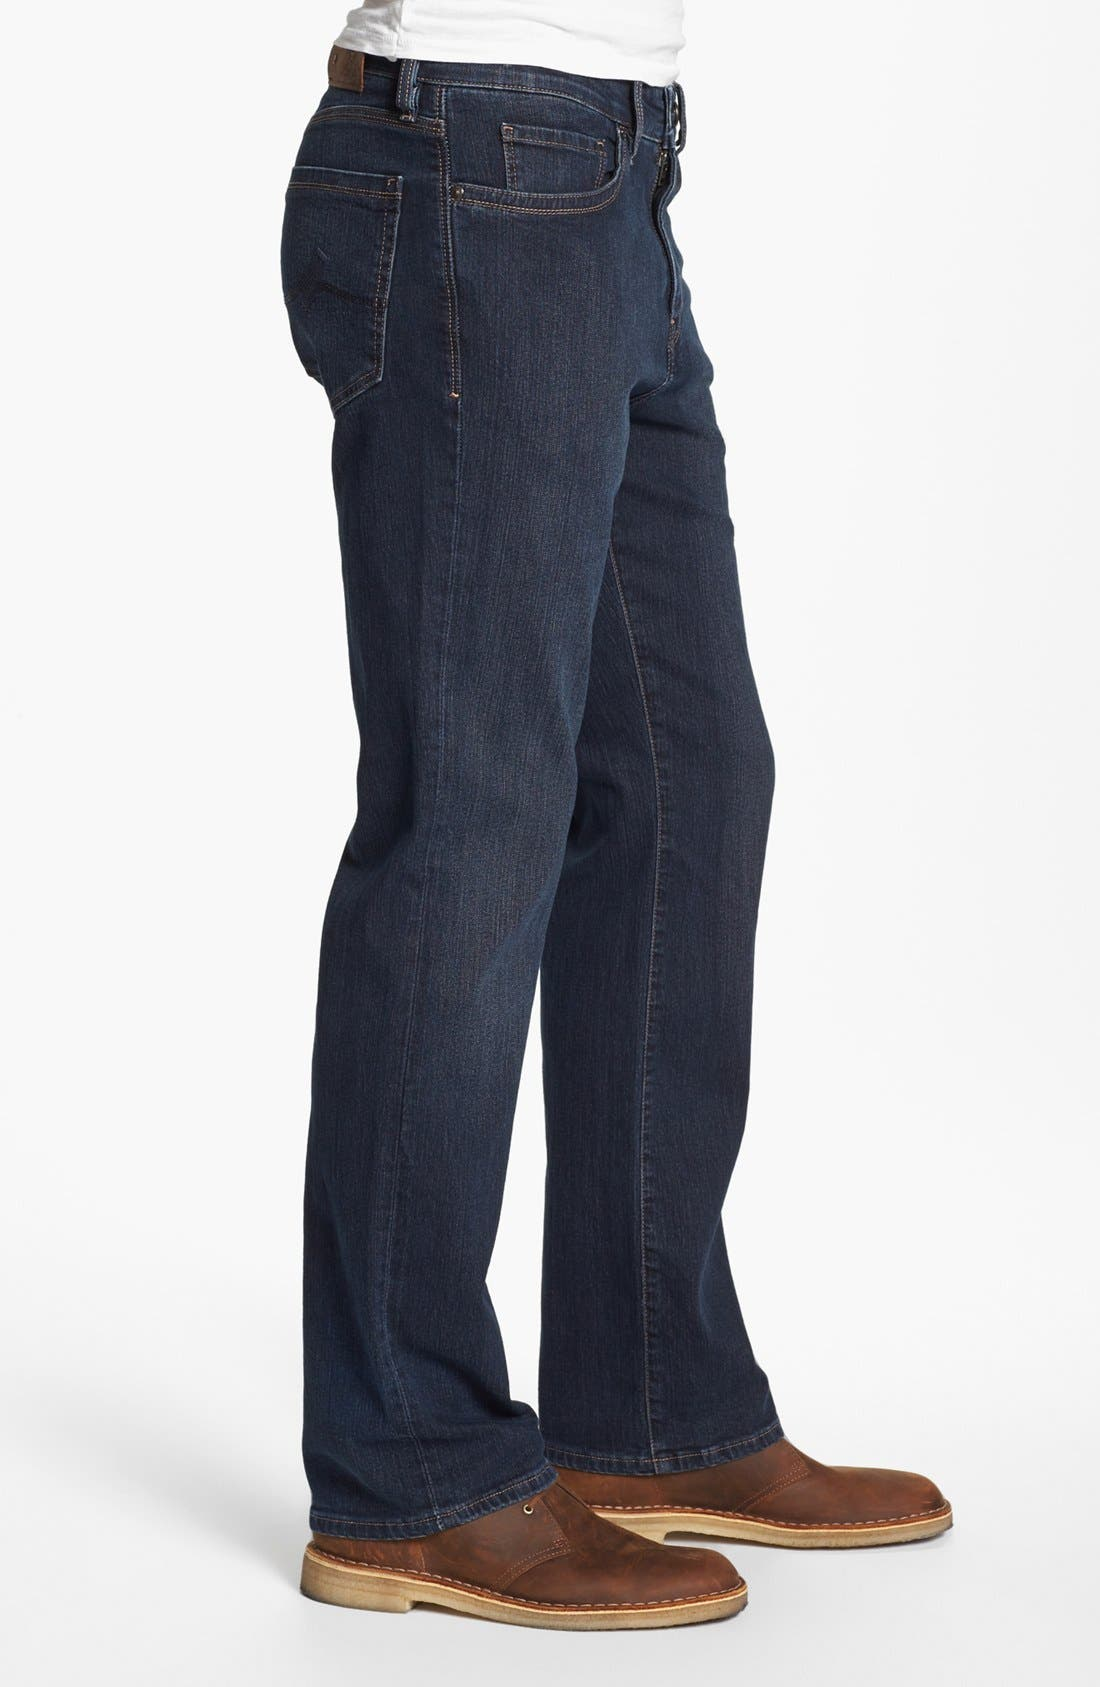 Alternate Image 3  - 34 Heritage Charisma Relaxed Fit Jeans (Dark Comfort) (Regular & Tall)